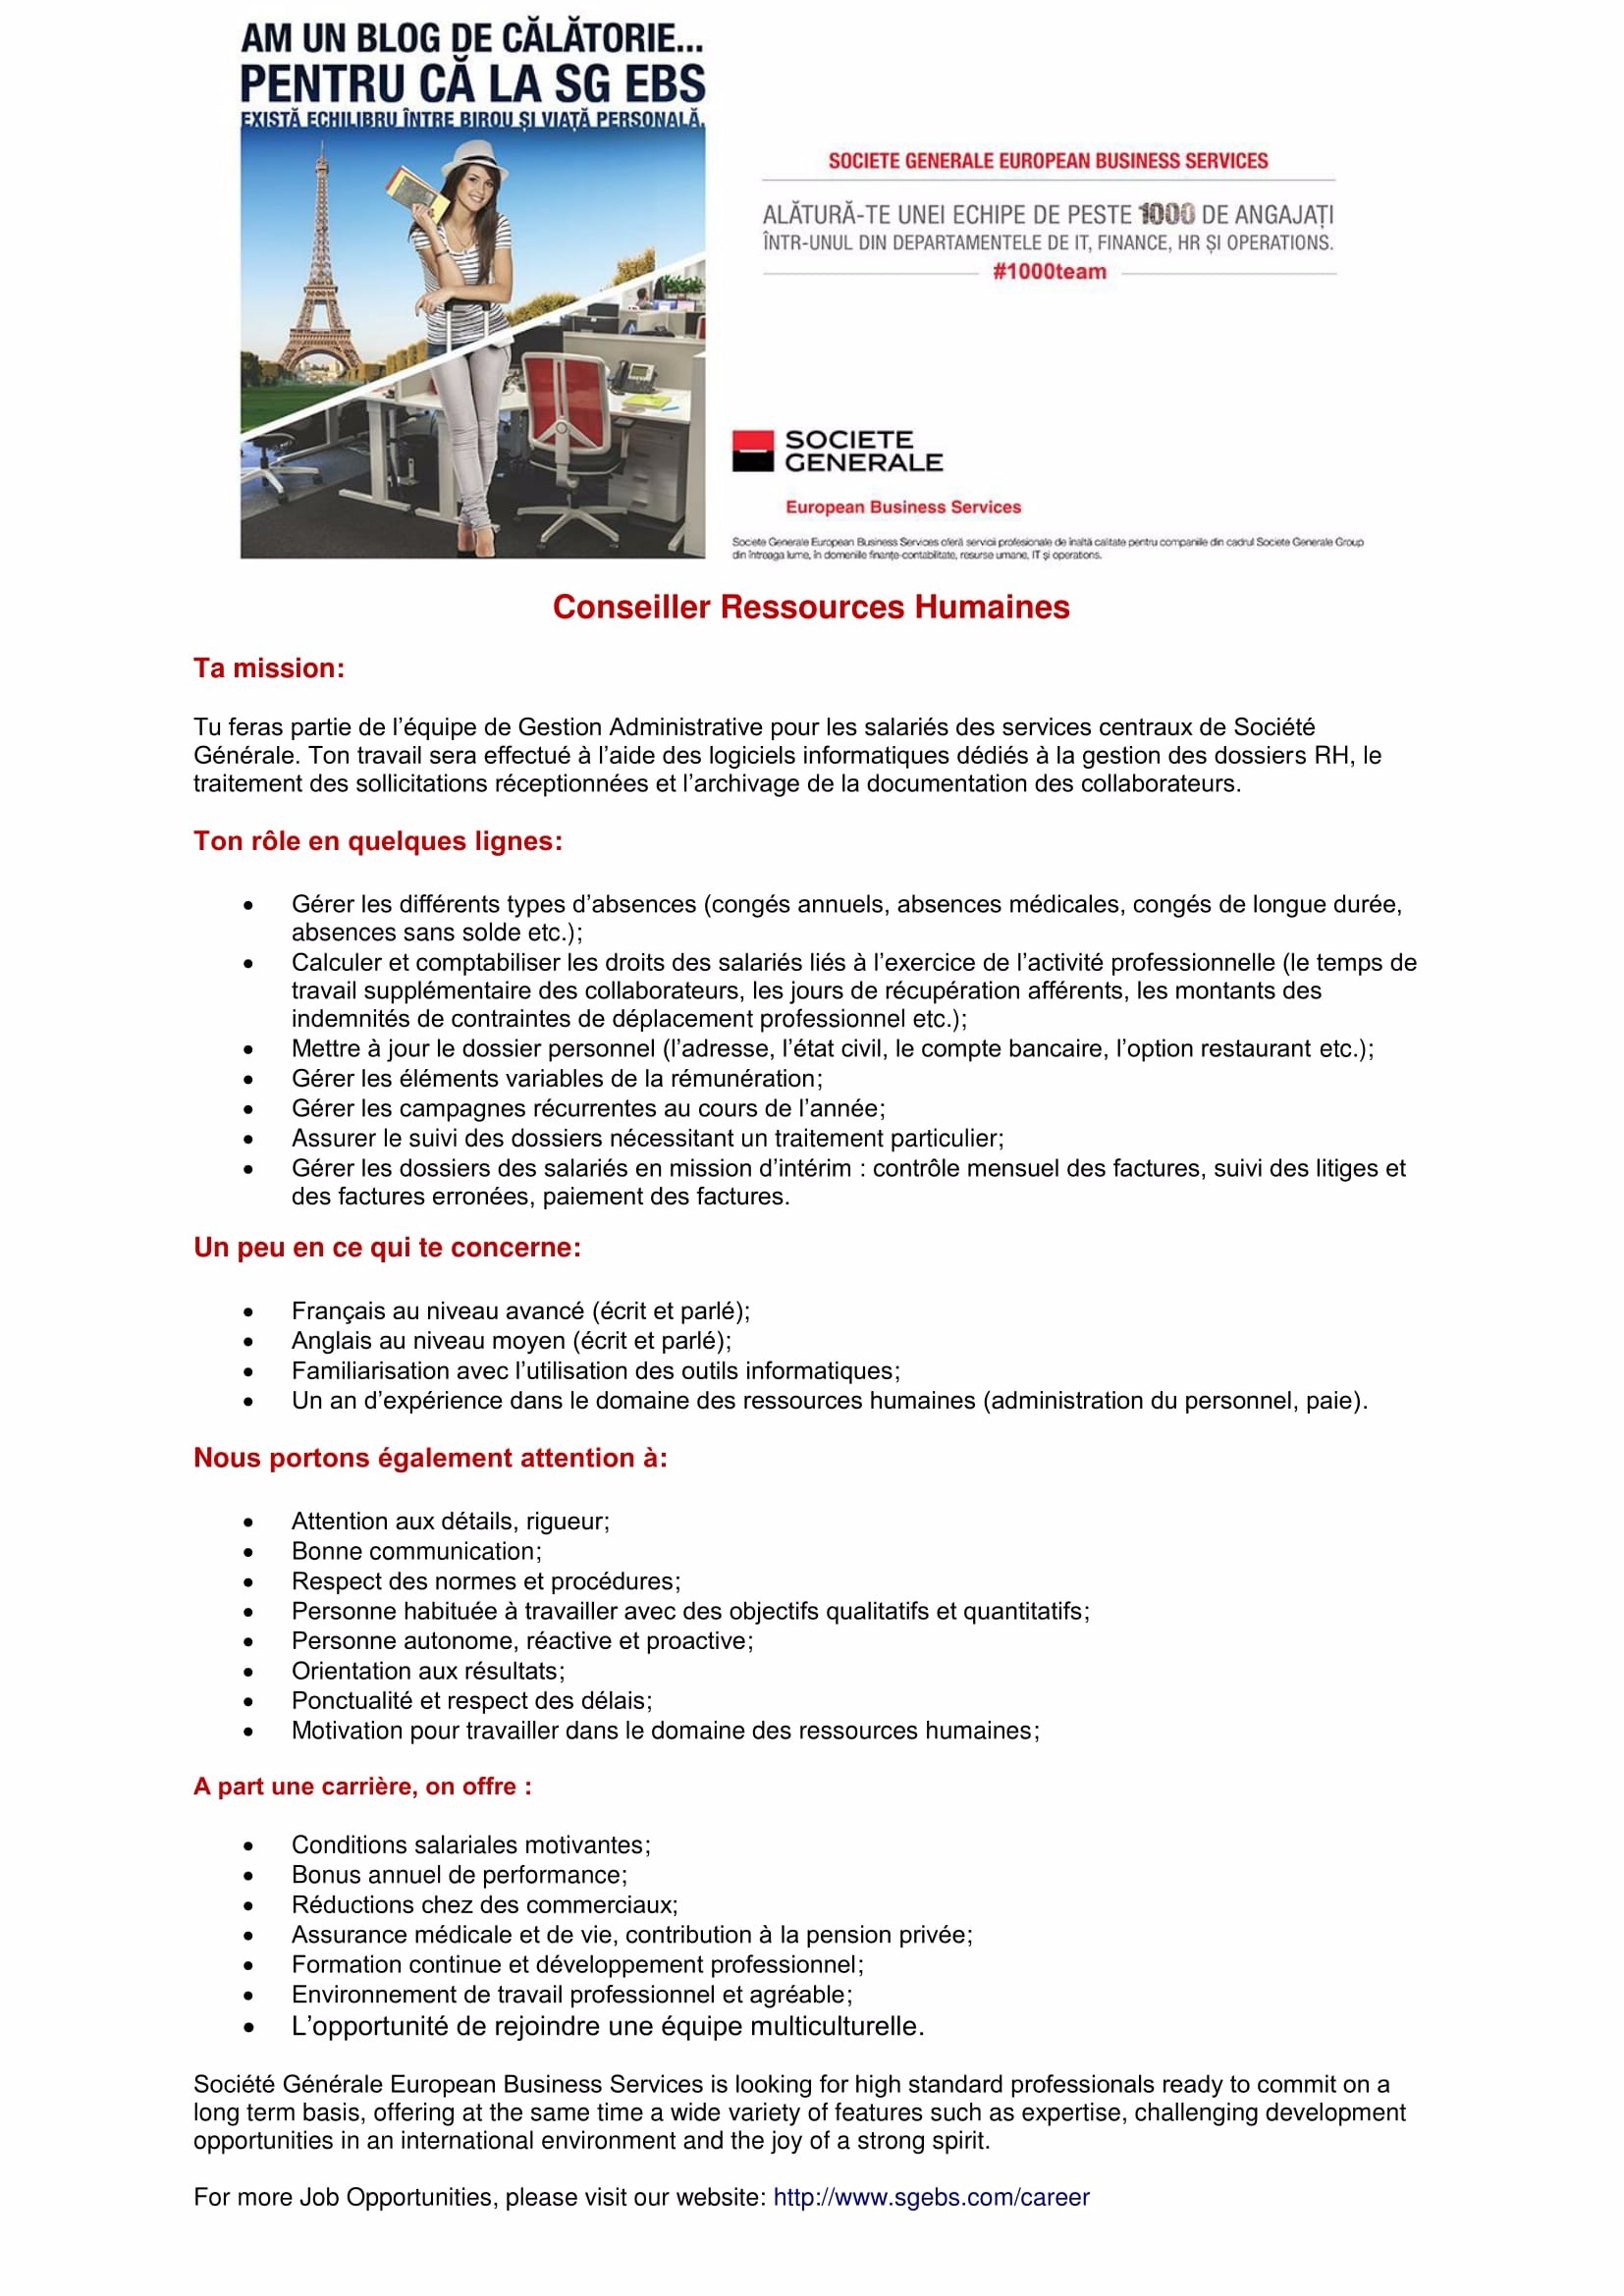 Conseiller Resources Humaines